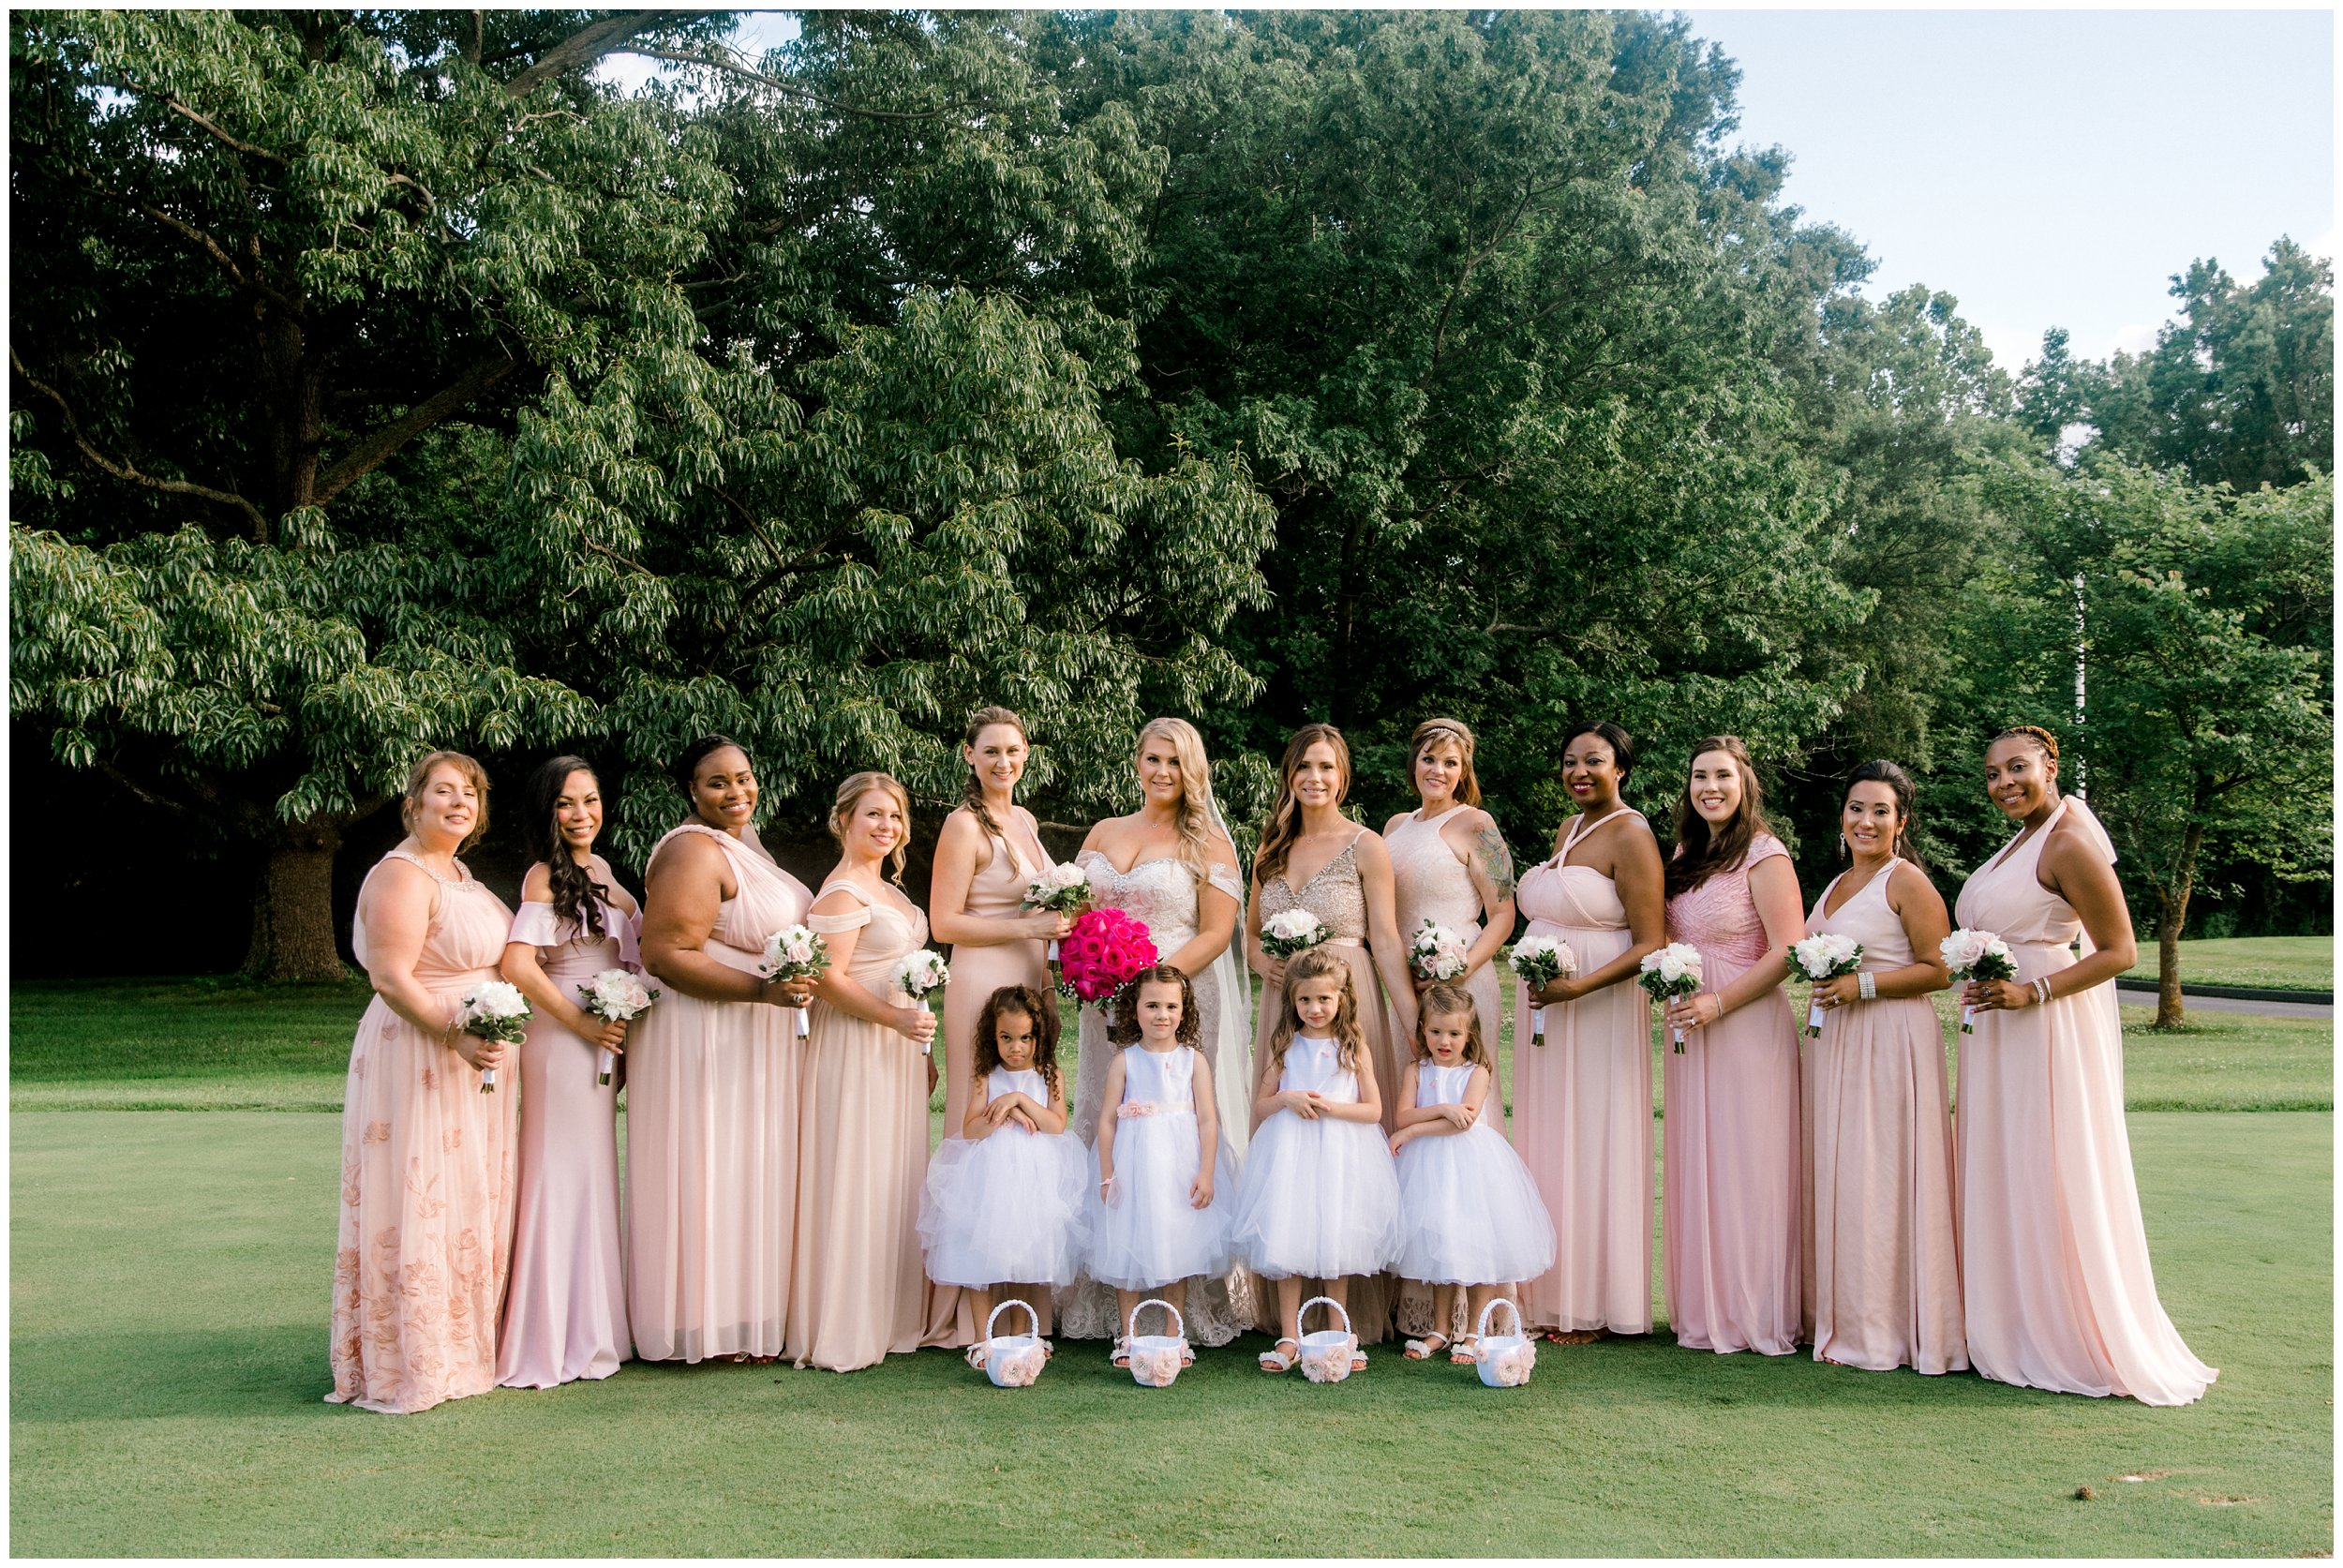 Bridal party with flower girls Hyatt Regency Maryland Wedding